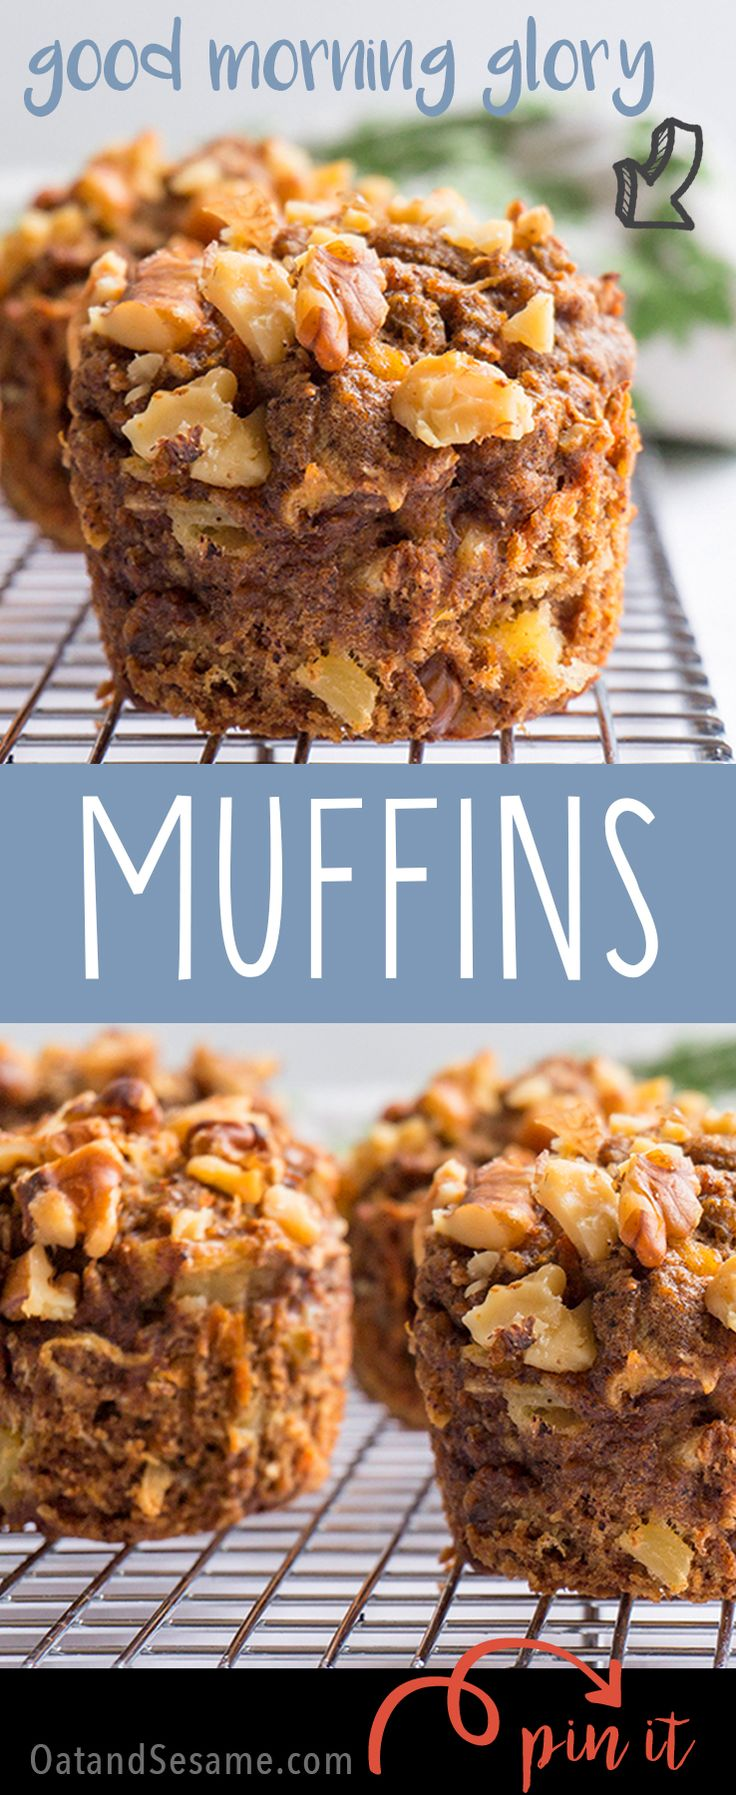 Good Morning Glory! A Glorious Healthy Muffin!   #recipe at OatandSesame.com